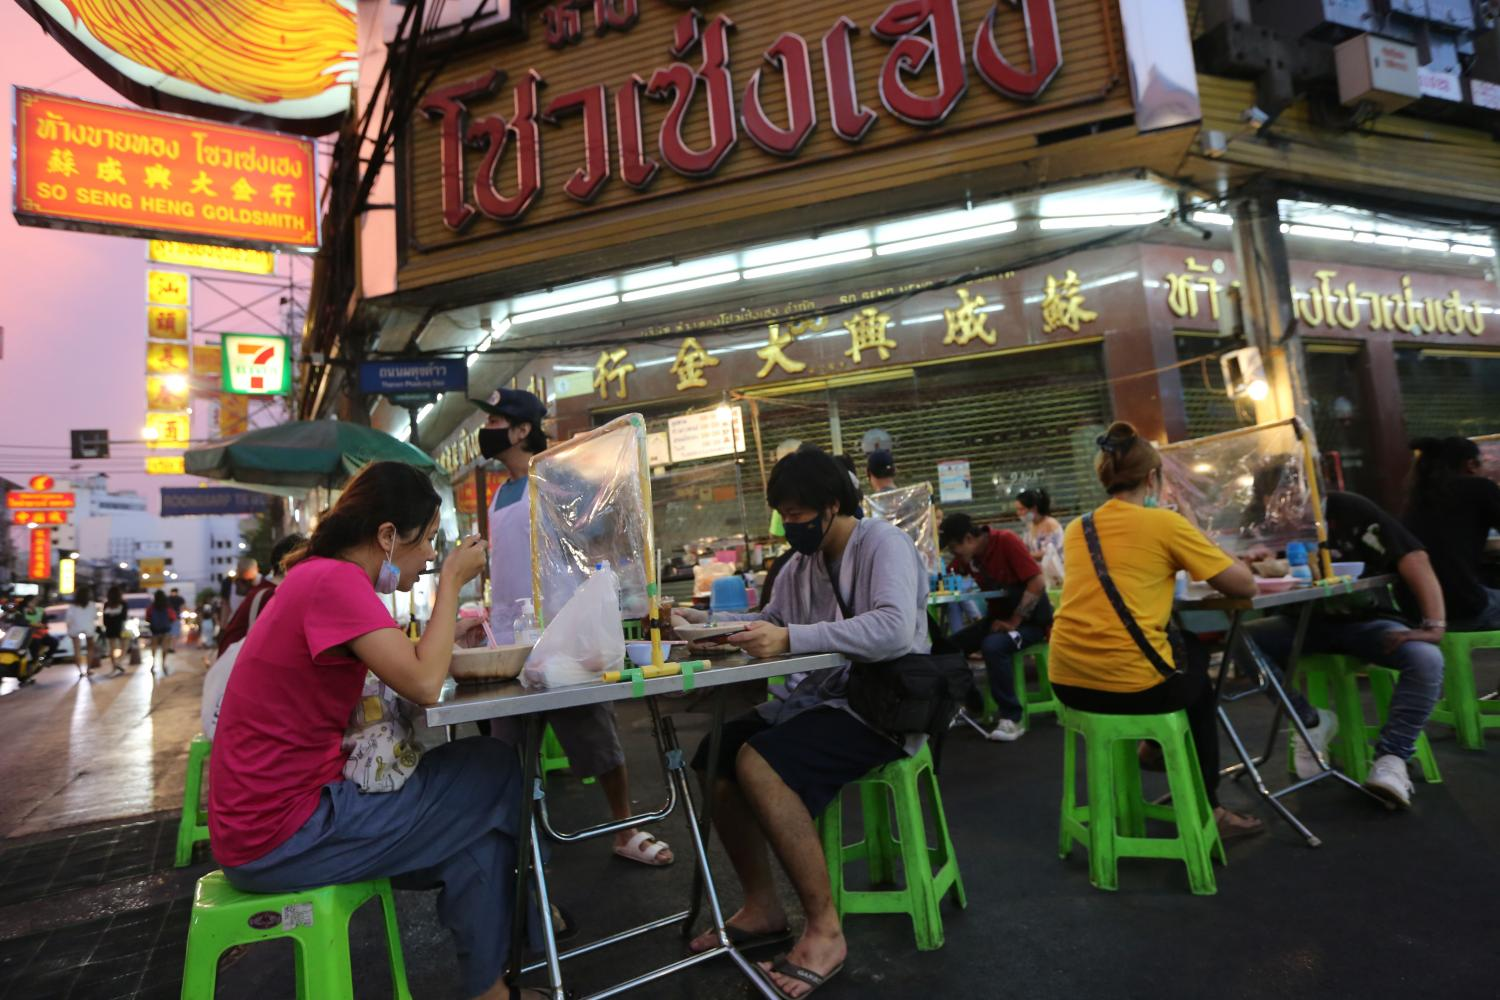 Local street food vendors, such as those on Yaowarat Road, are a priority for the latest cash handout scheme. (Photo by Wichan Charoenkiatpakul)